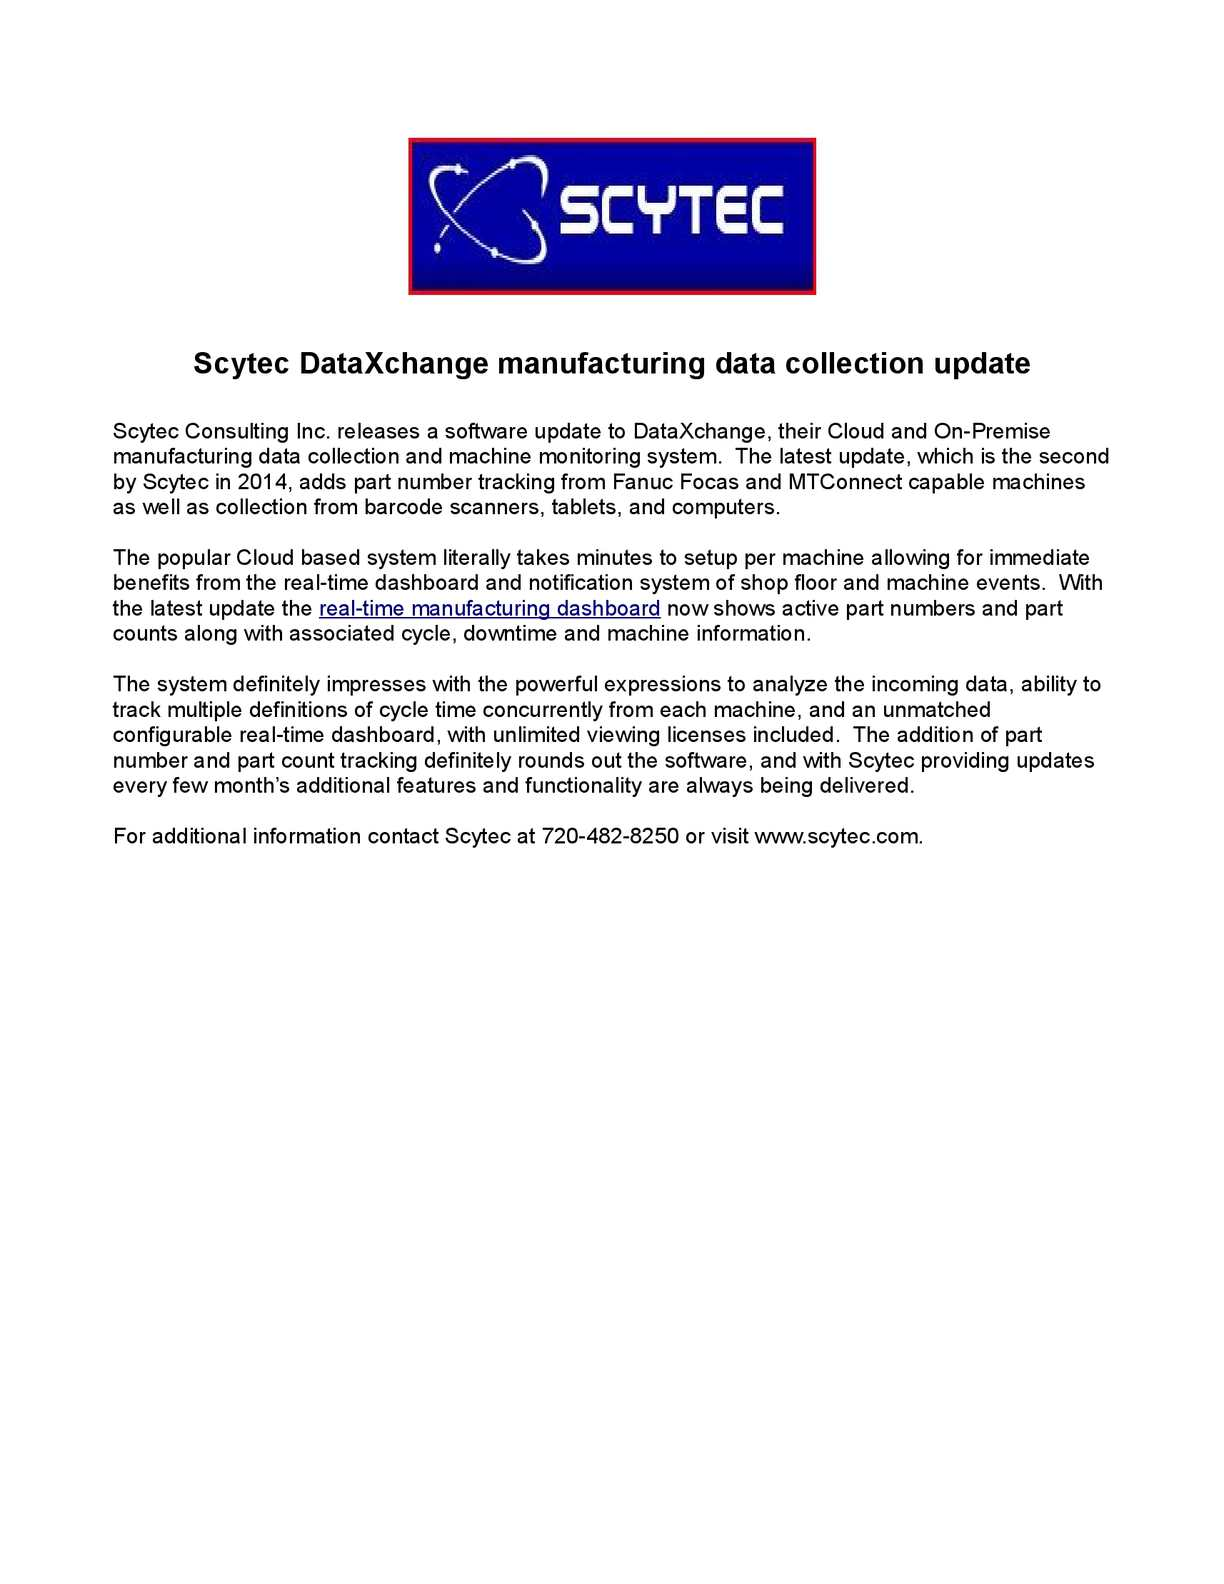 Calaméo - Scytec DataXchange manufacturing data collection